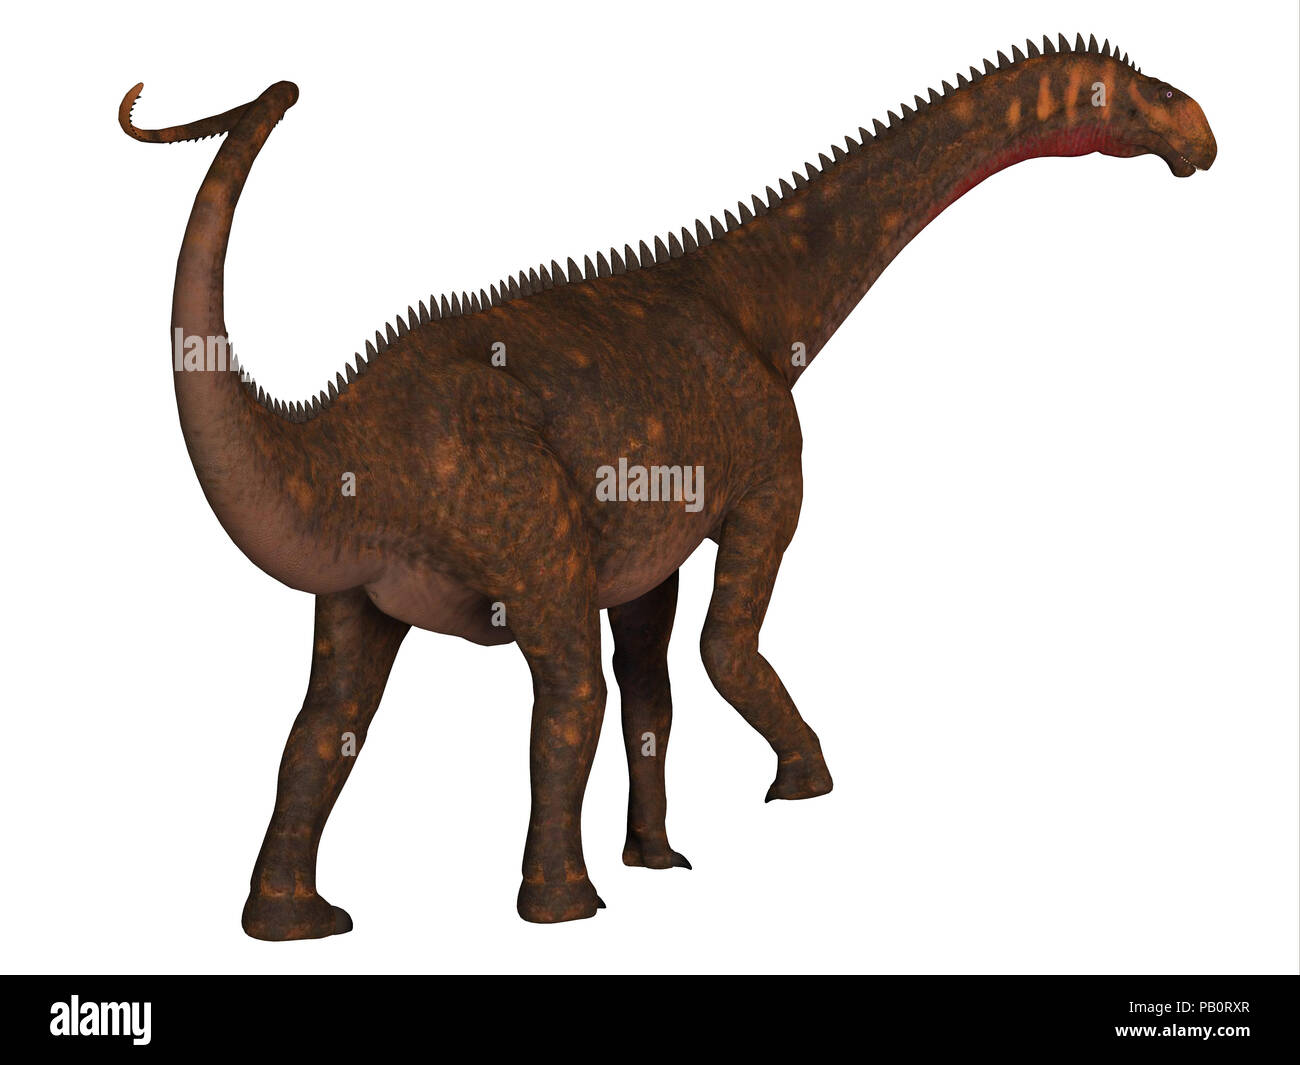 Mierasaurus Dinosaur Tail - Mierasaurus was a herbivorous sauropod dinosaur that lived in Utah, USA during the Cretaceous Period. - Stock Image